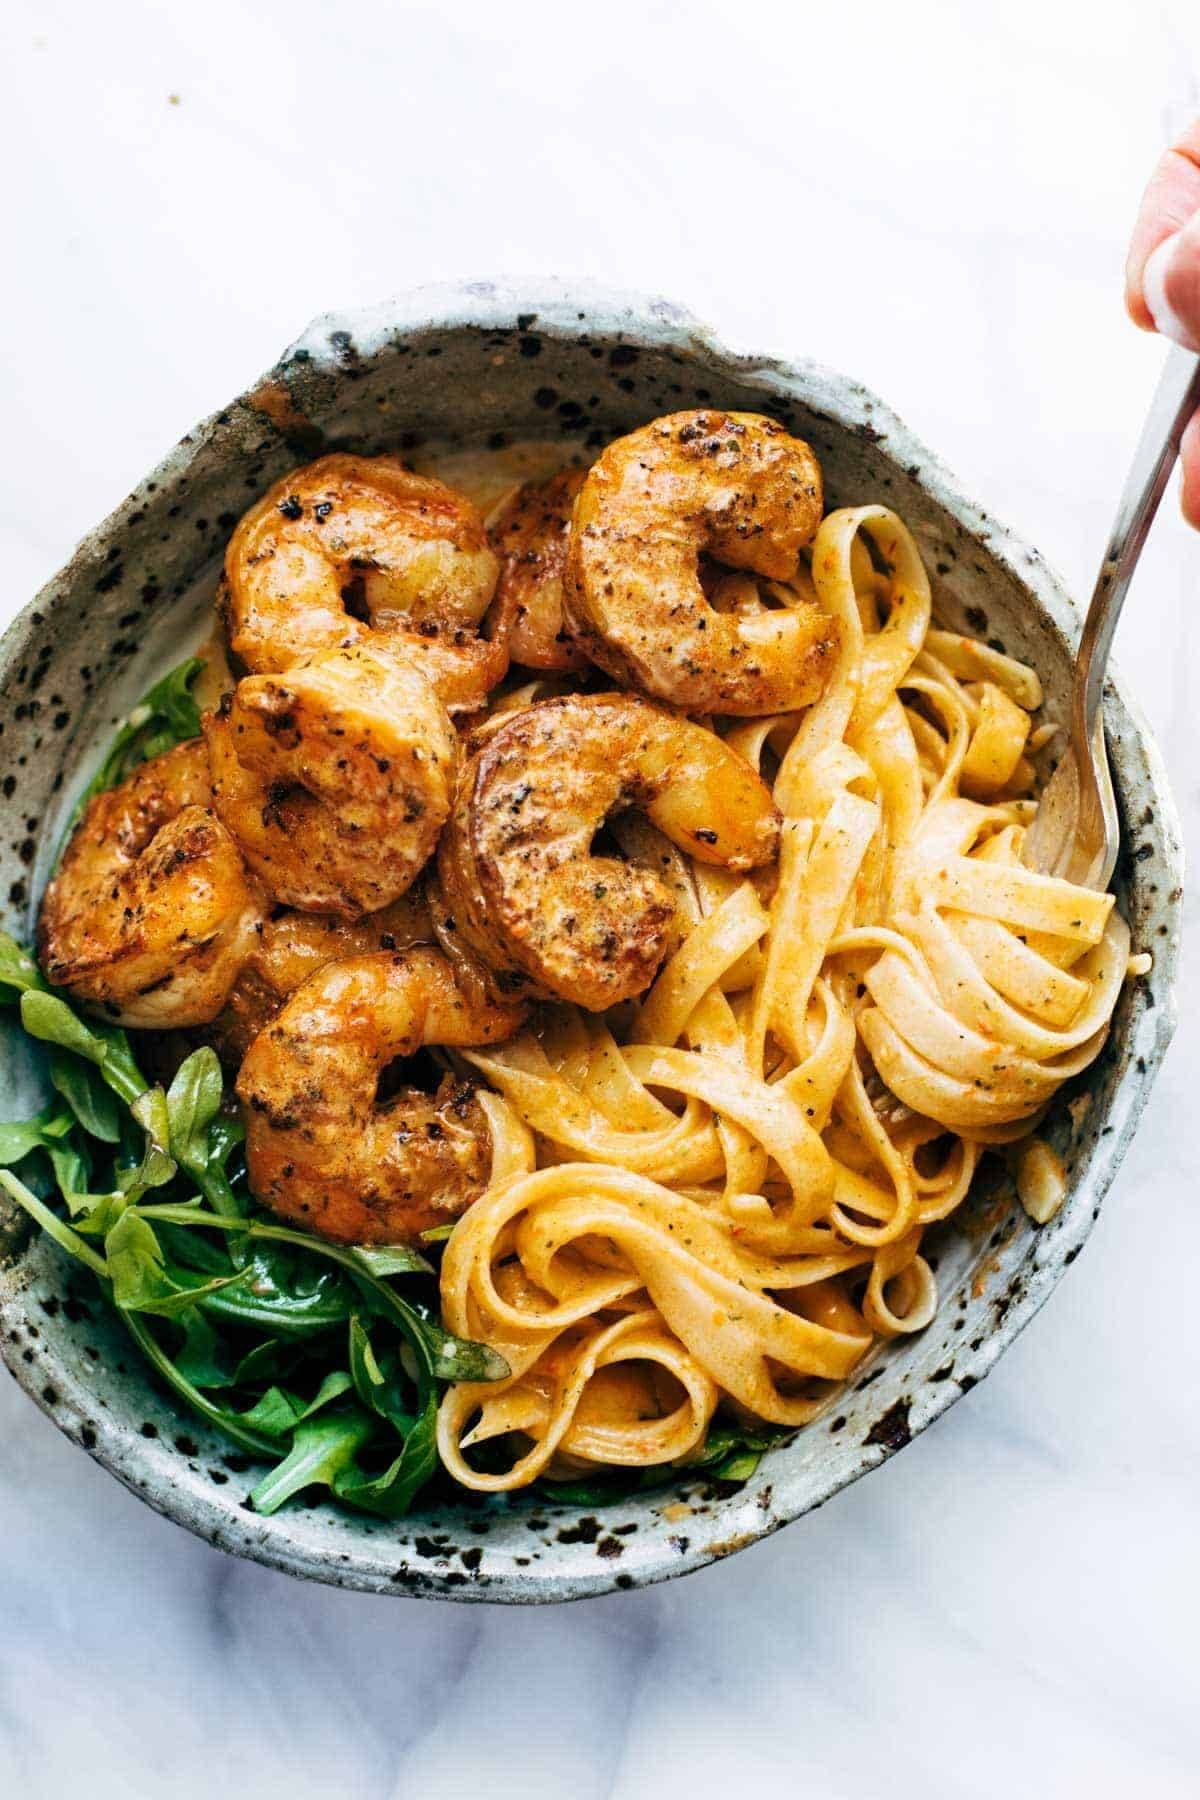 Red Pepper Fettuccine with Shrimp in a bowl with noodle twirl.